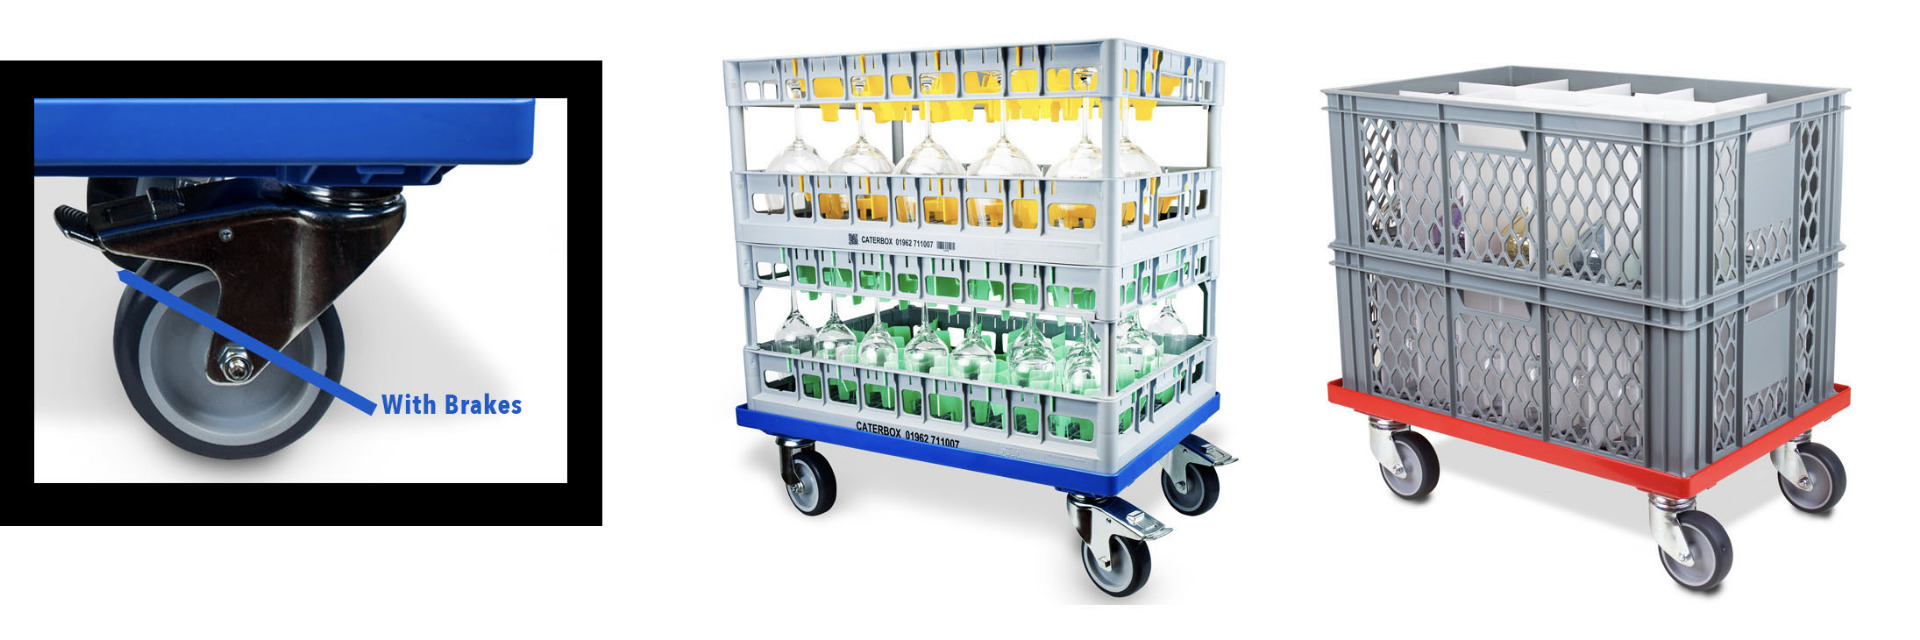 Catering Equipment Dolly